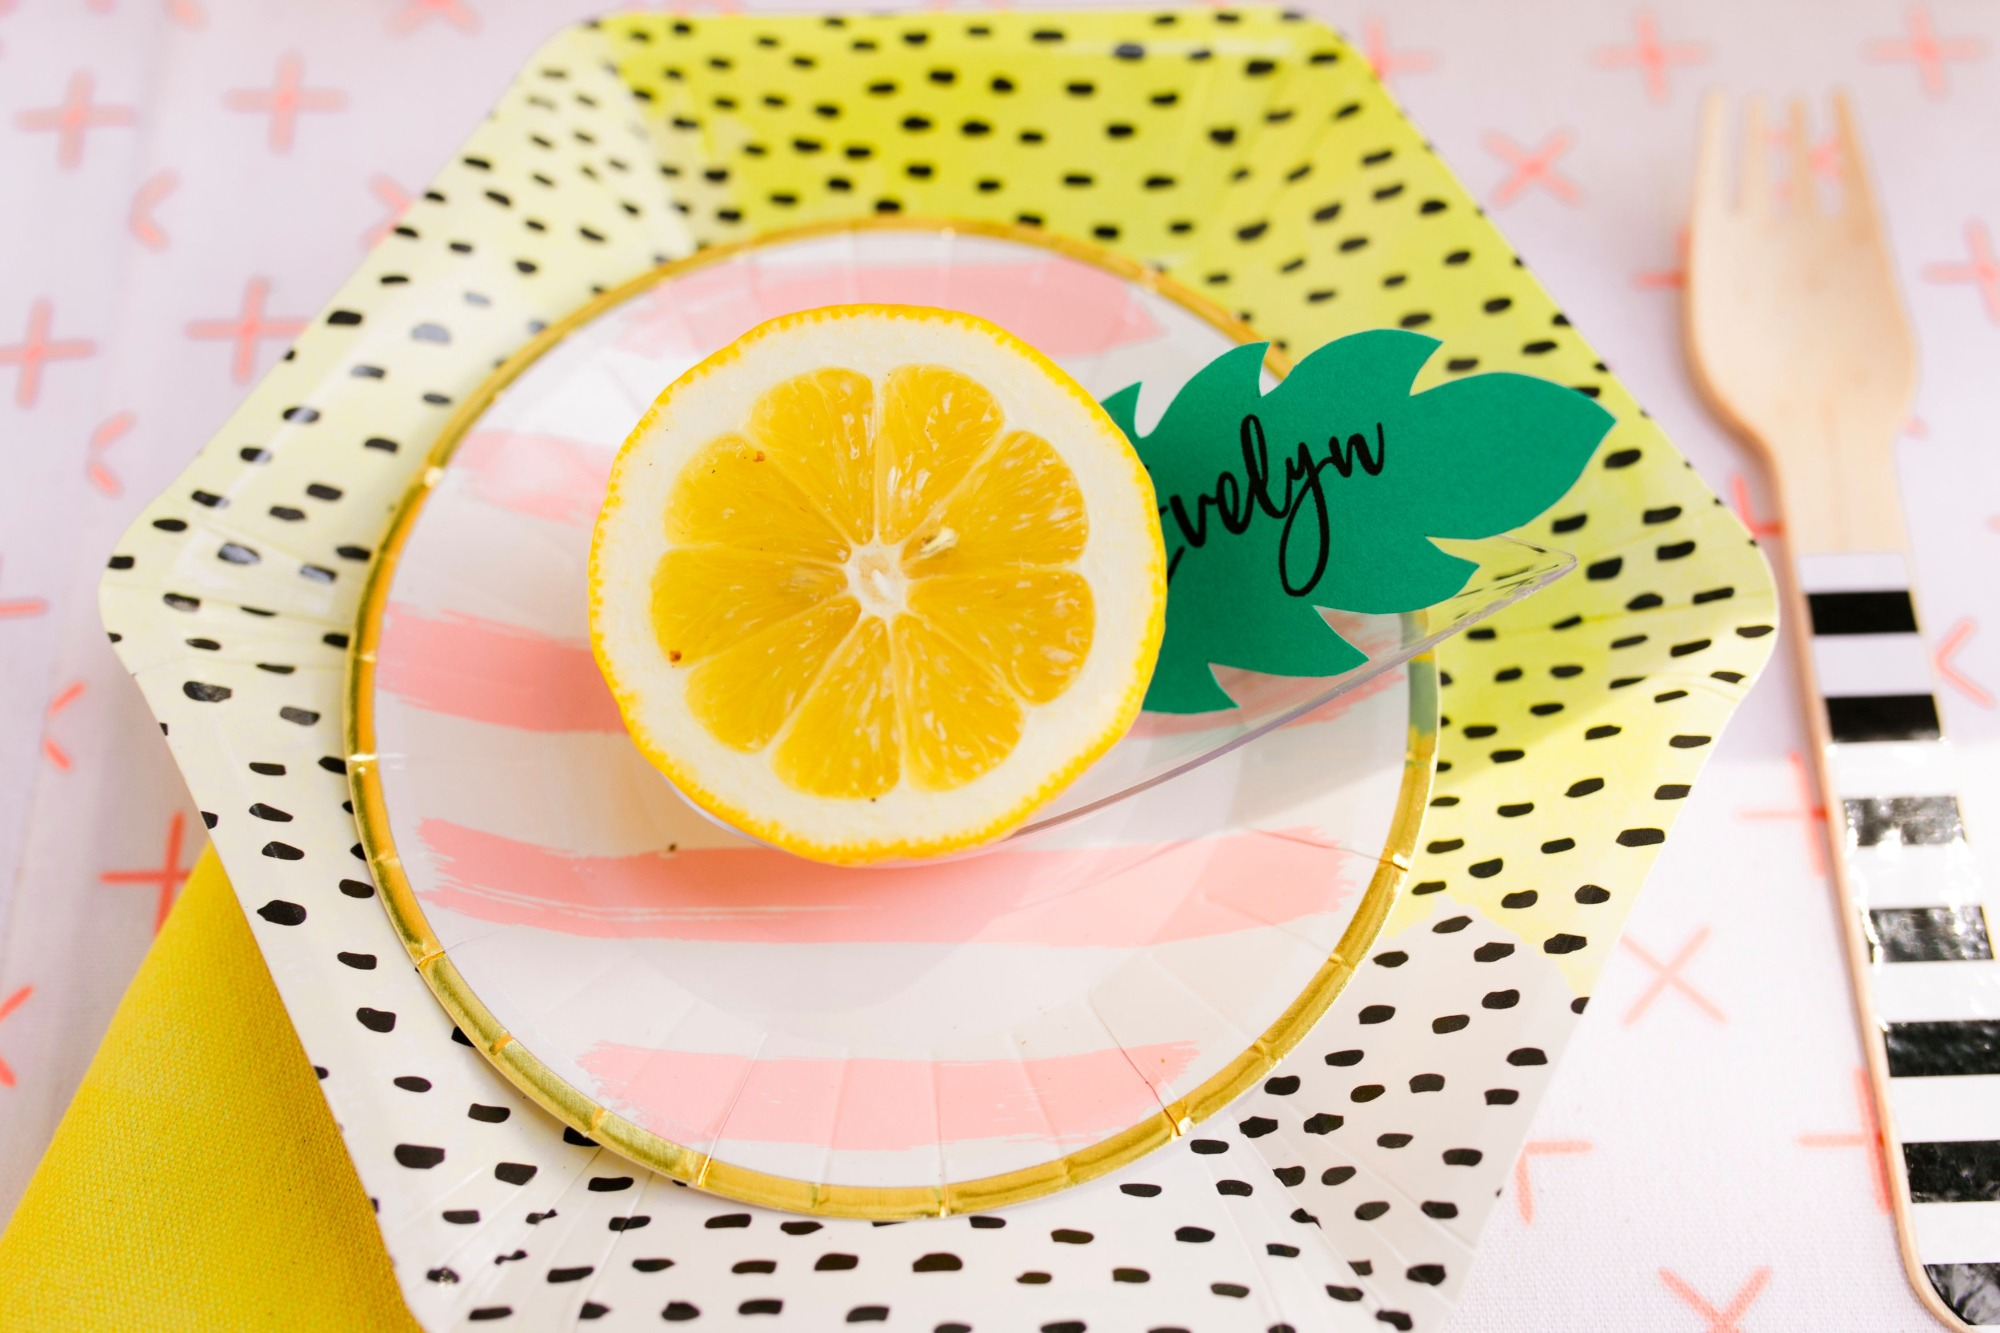 lemon place setting from Lemonade Stand Birthday Party by Forrest and J. | Black Twine